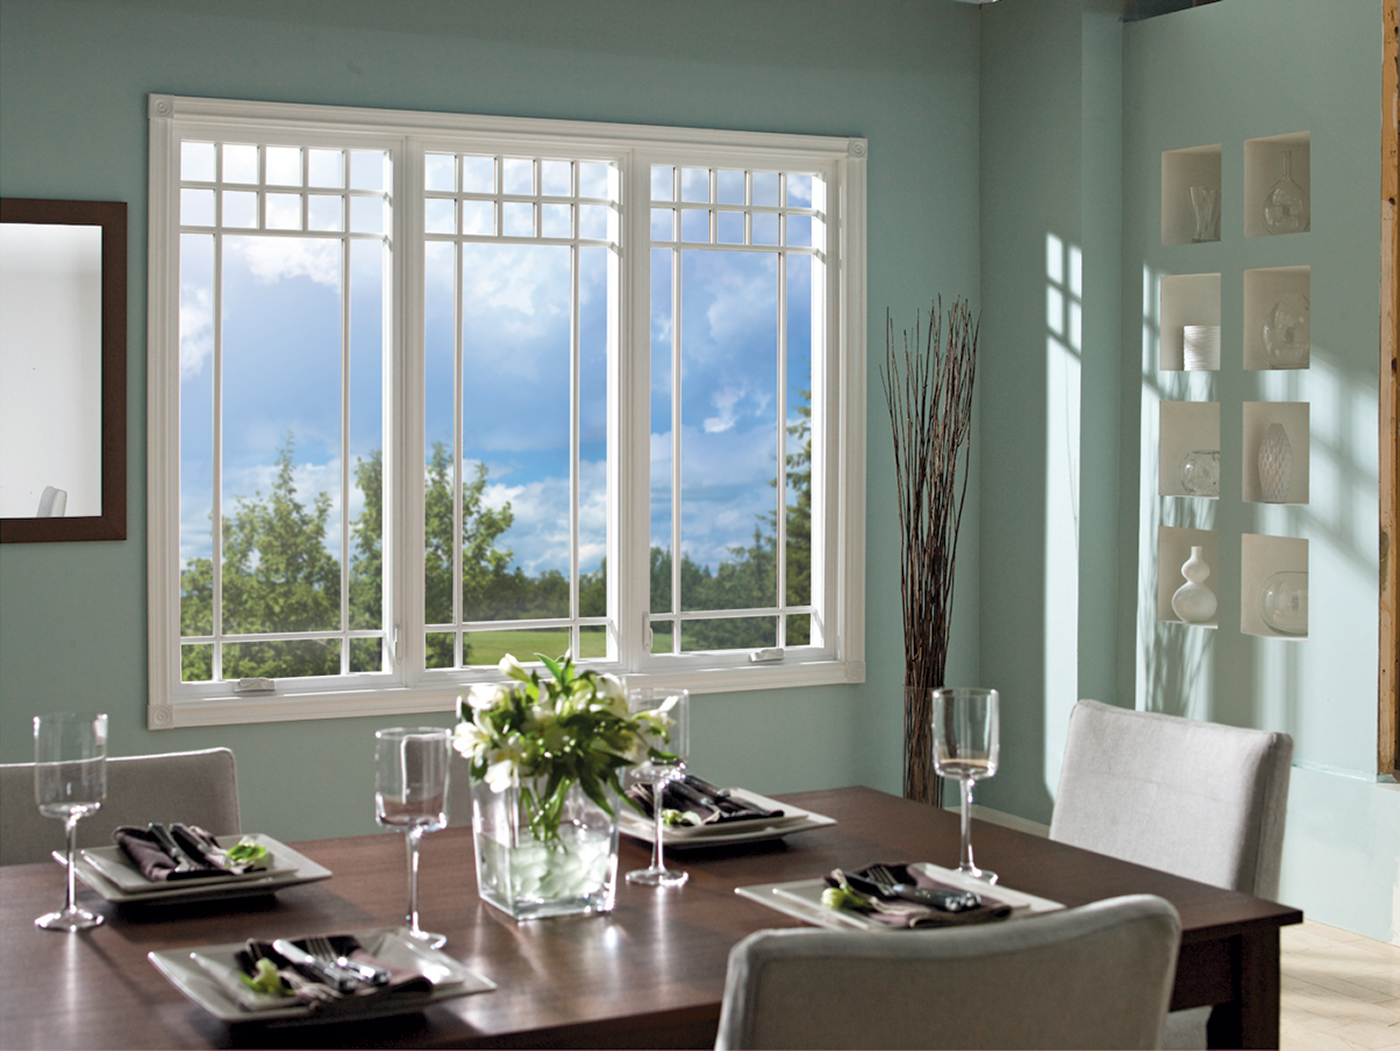 Centra windows are giving away free windows populist - Window design for home ...